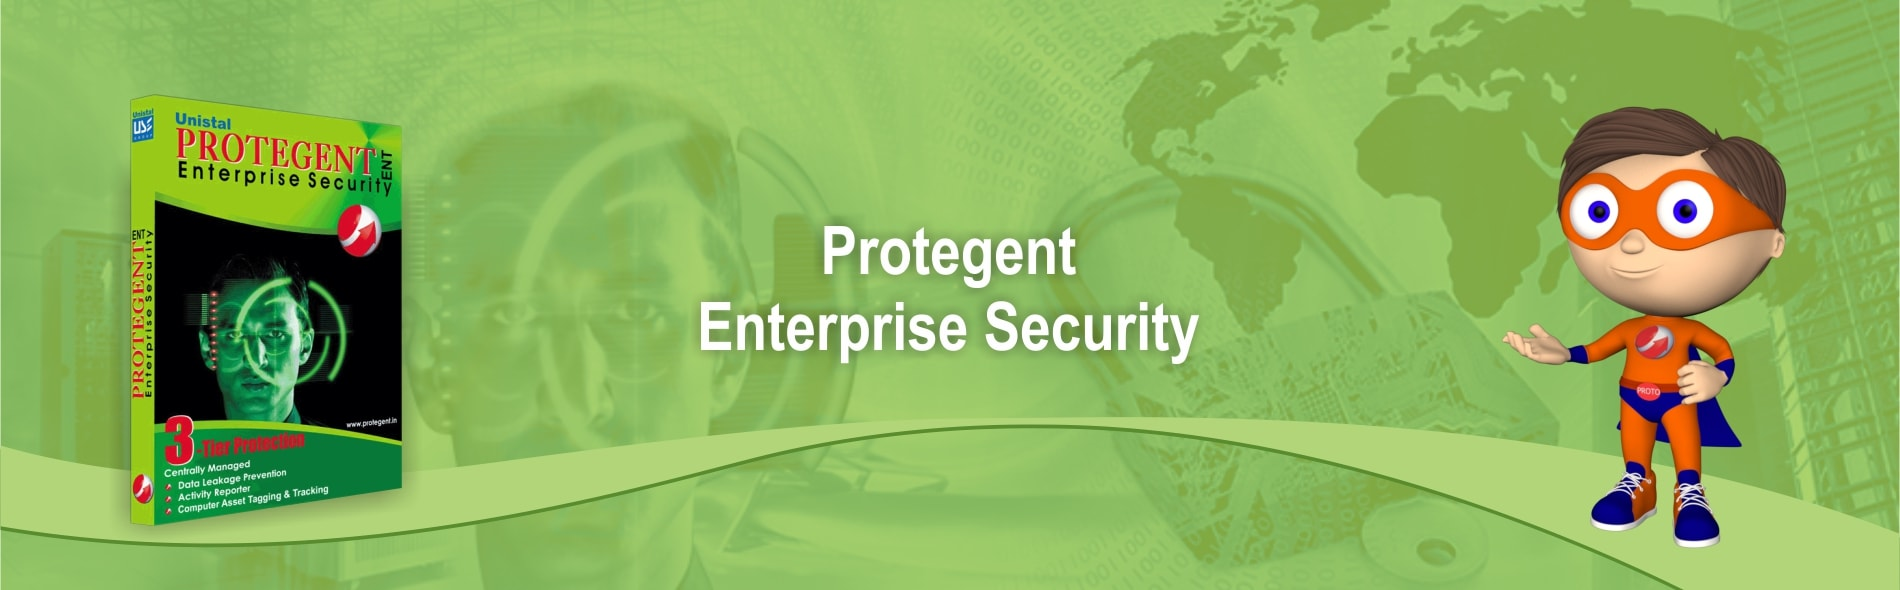 Enterprise-security